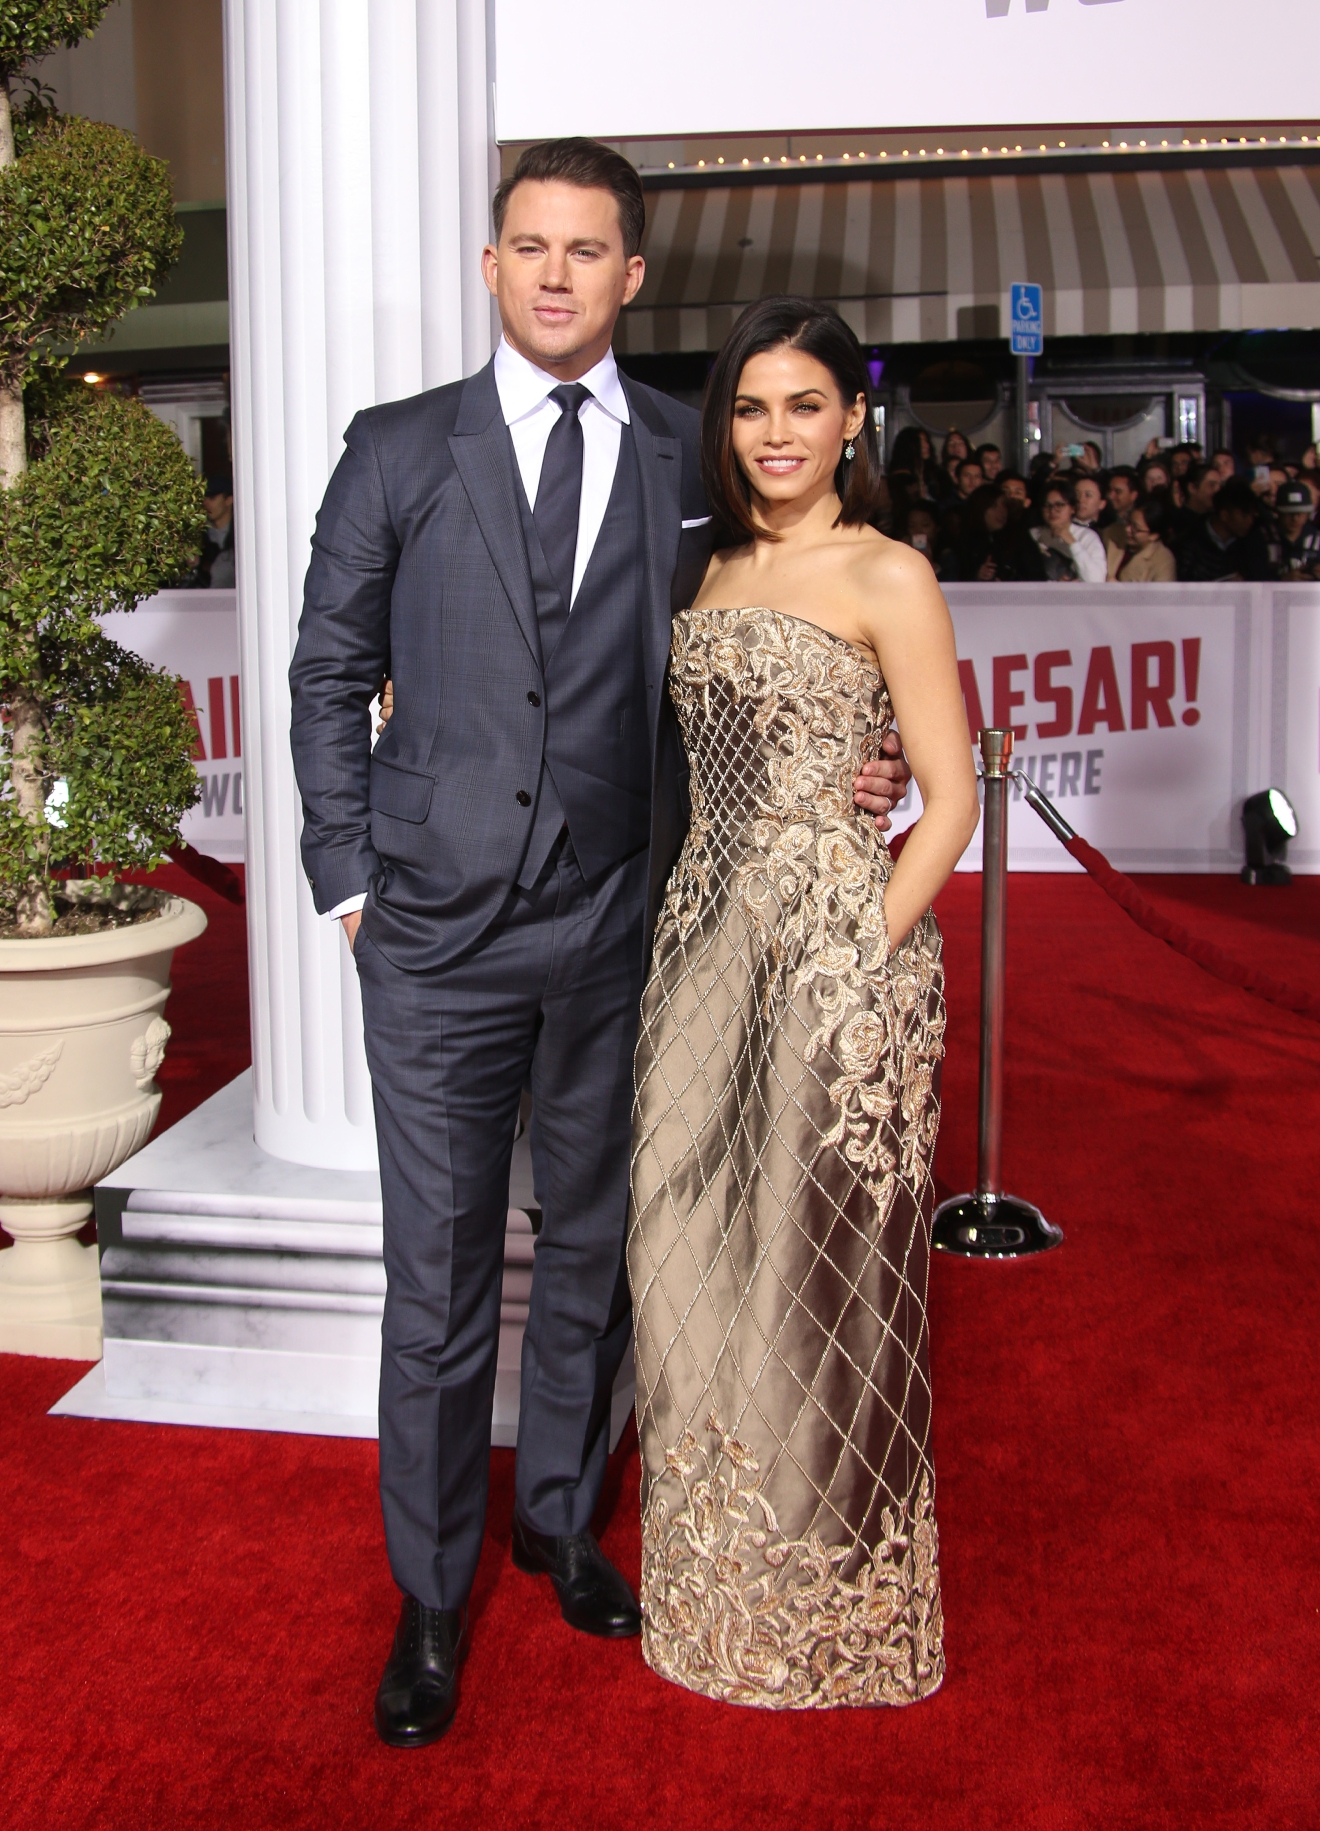 "Premiere Of Universal Pictures' ""Hail, Caesar!""  Featuring: Channing Tatum, Jenna Dewan-Tatum Where: Westwood, California, United States When: 02 Feb 2016 Credit: FayesVision/WENN.com"